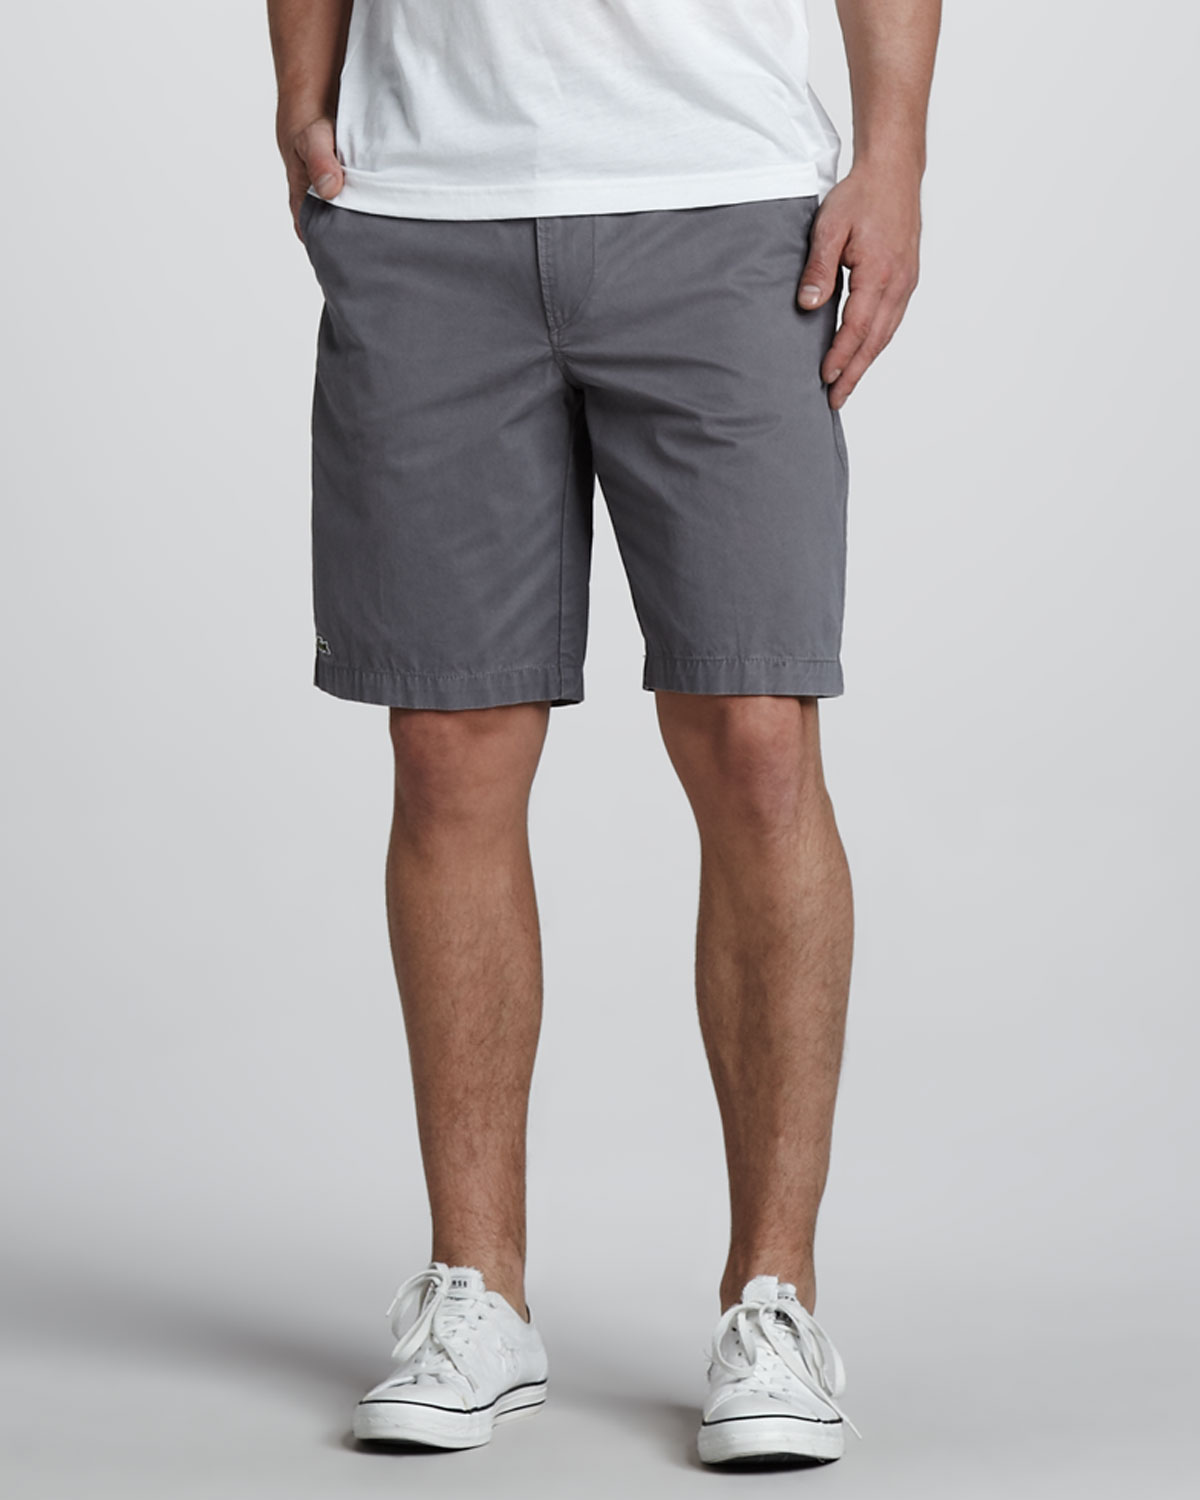 Levi's® shorts are a warm-weather essential. Keep it casual in this sleek short silhouette, constructed from stretch denim for comfort. Roll the hem for added style/5(8).